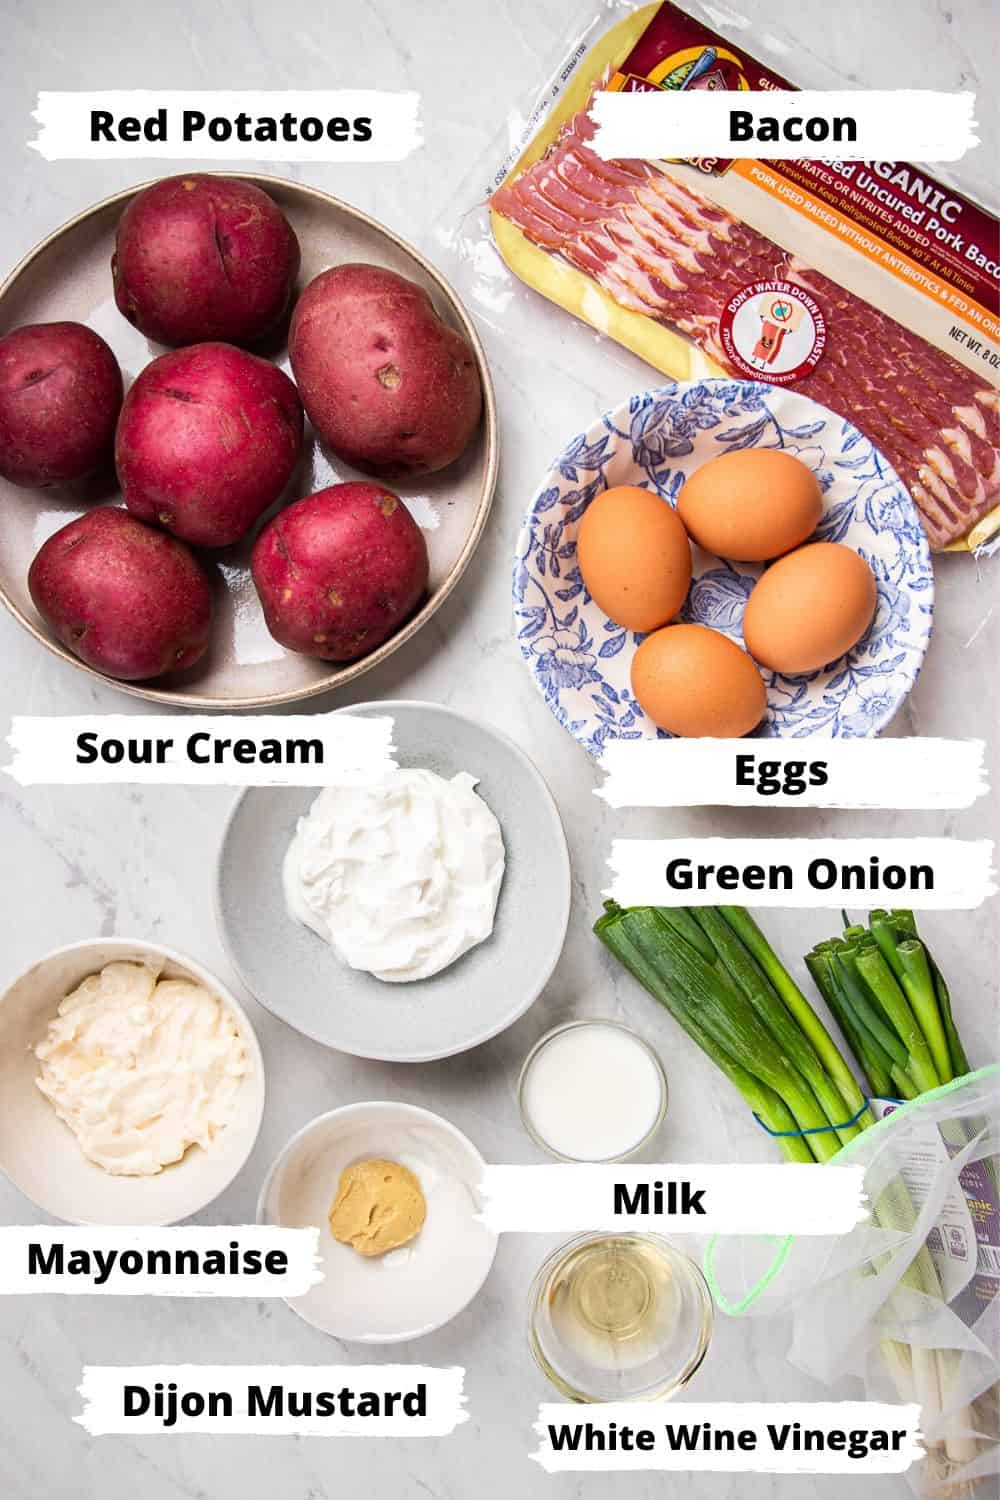 Ingredients for Potato Salad with Bacon and Egg.